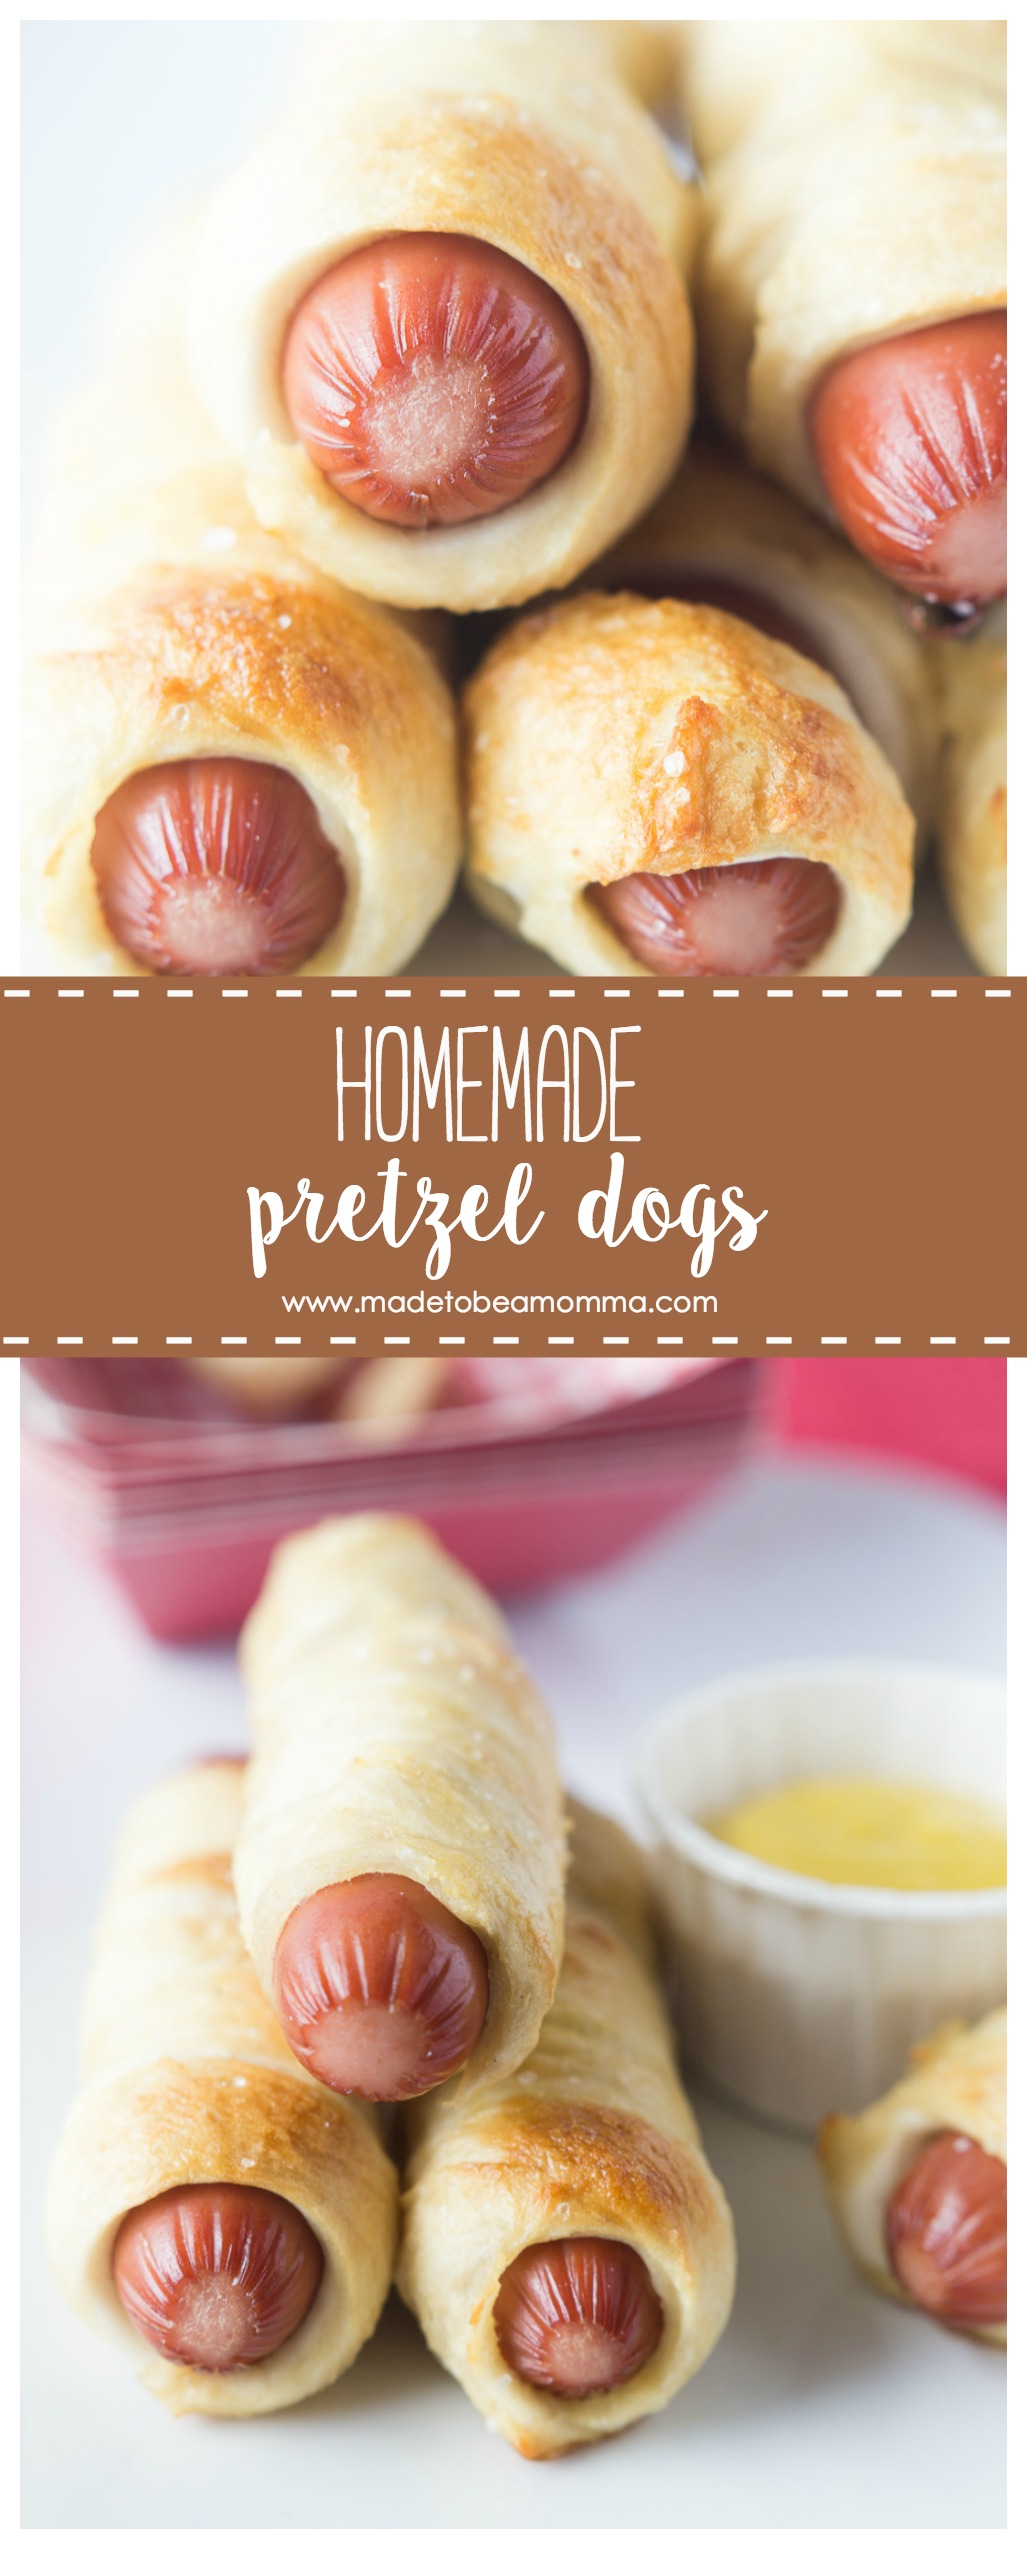 Homemade Pretzel Dogs